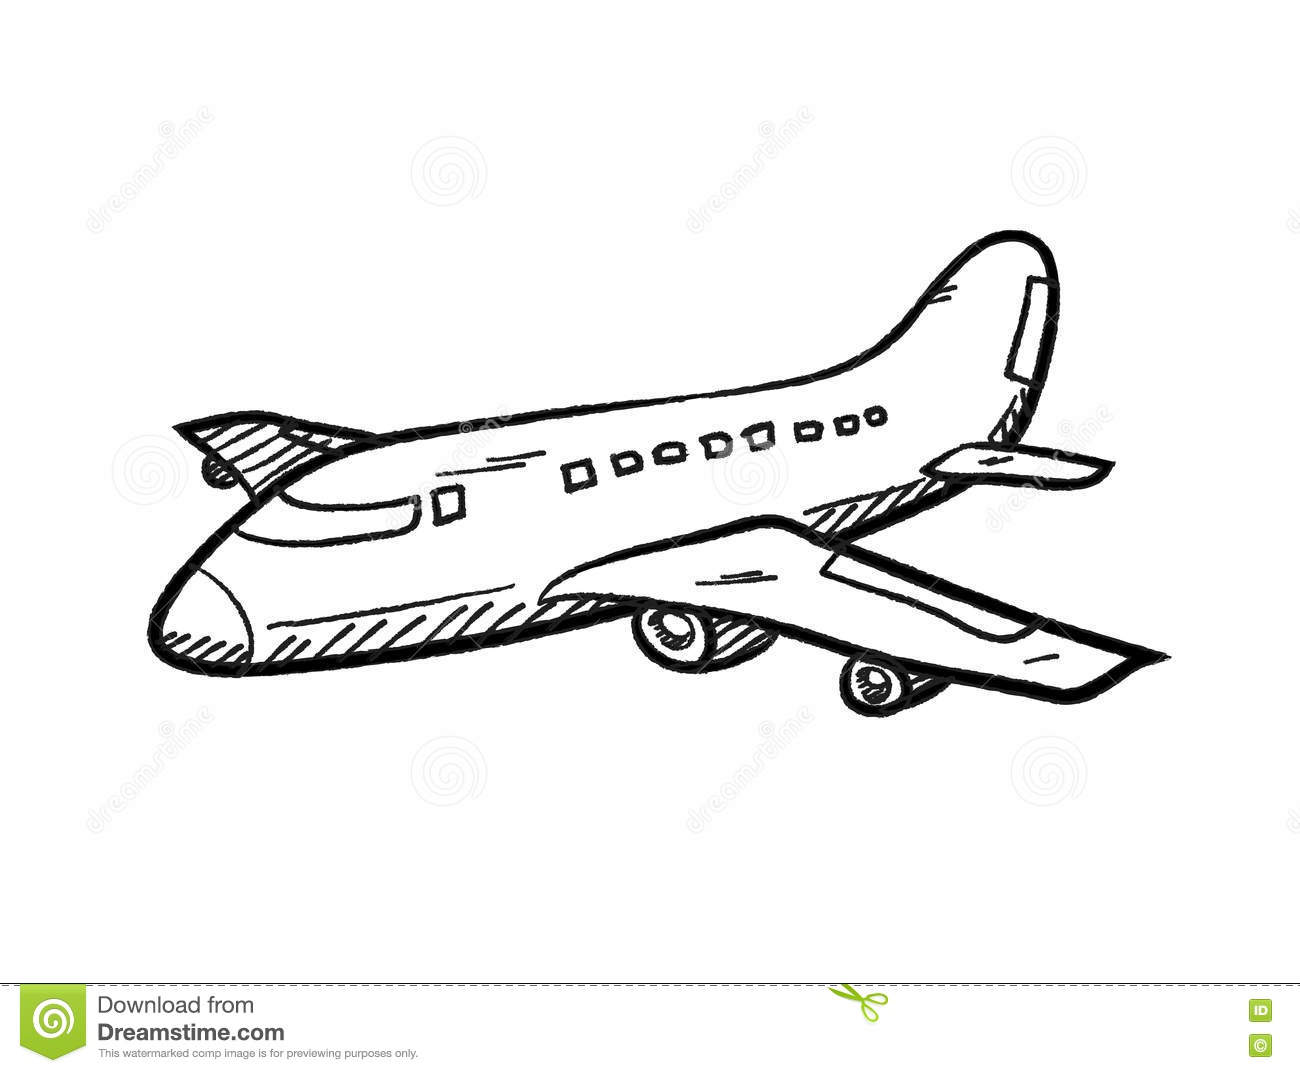 Airplane Doodle Stock Vector Illustration Of Doodle